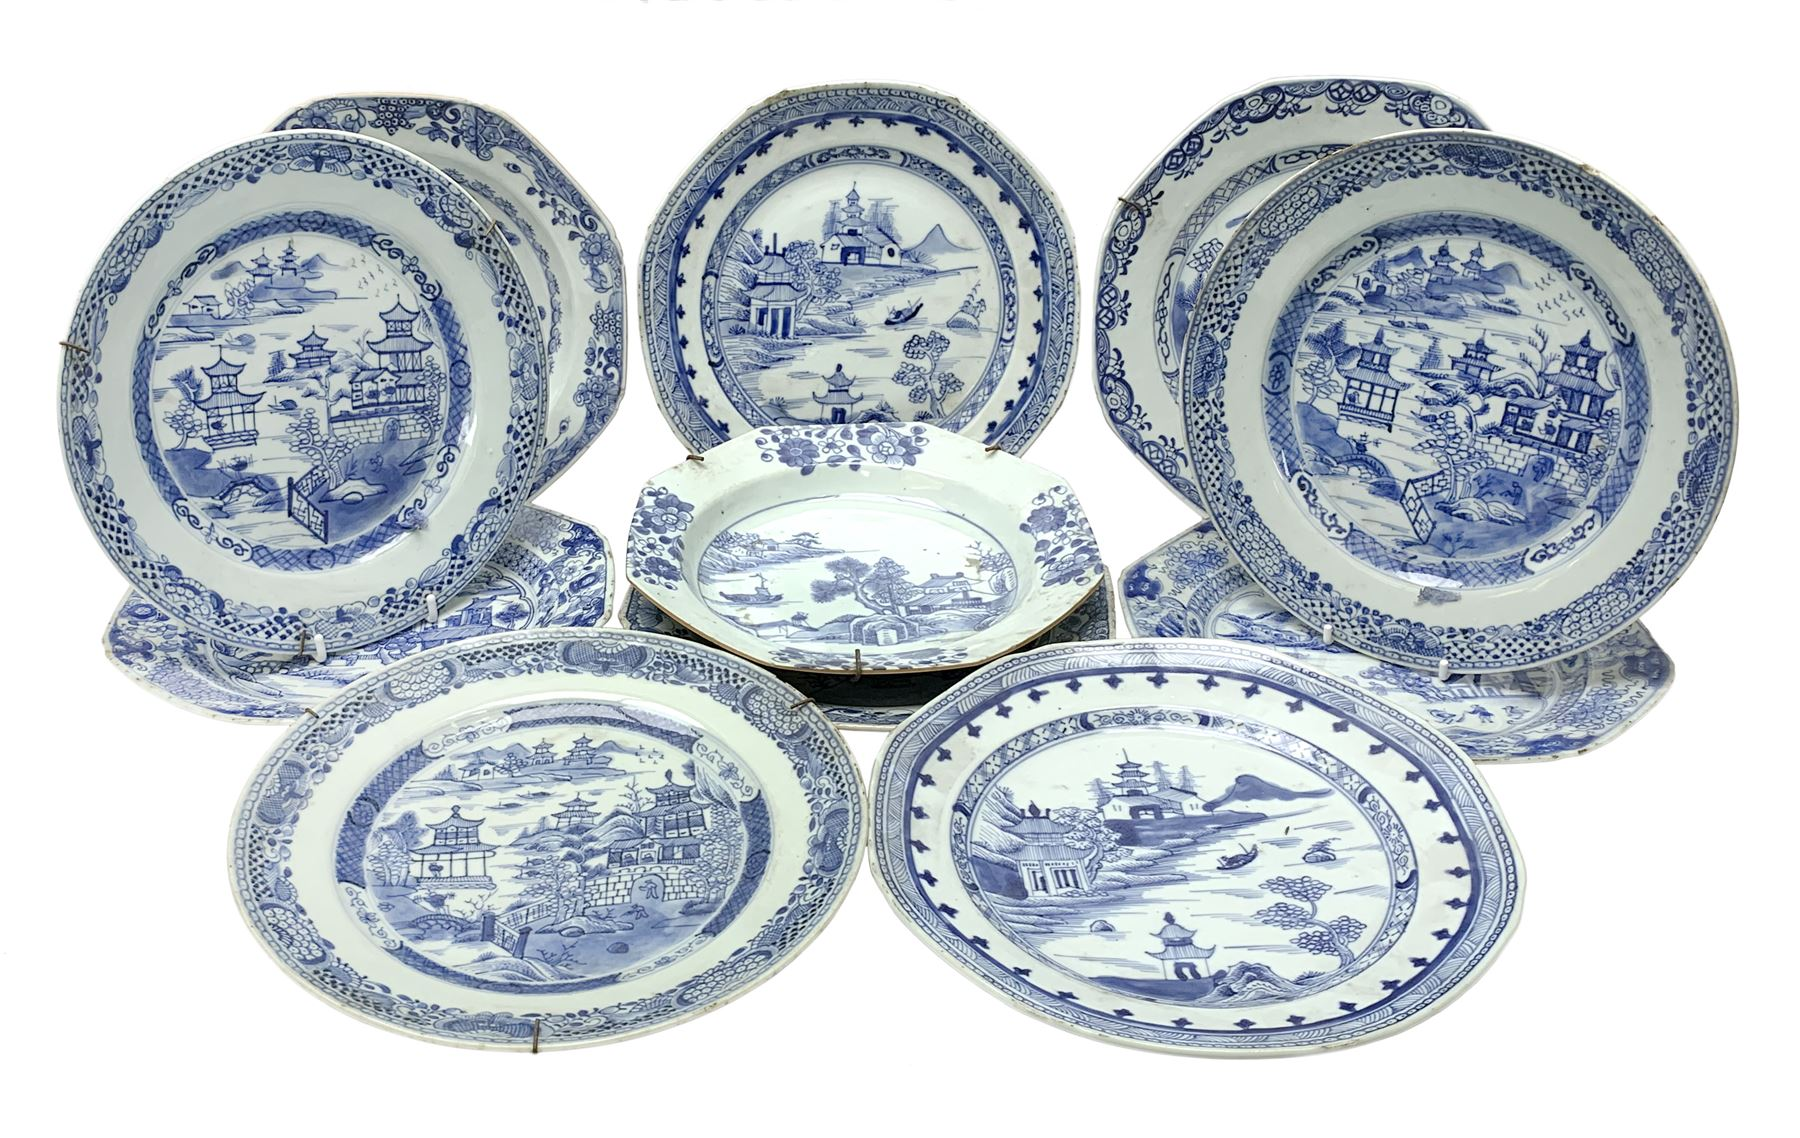 Late 18th/early 19th century Chinese export blue and white porcelain